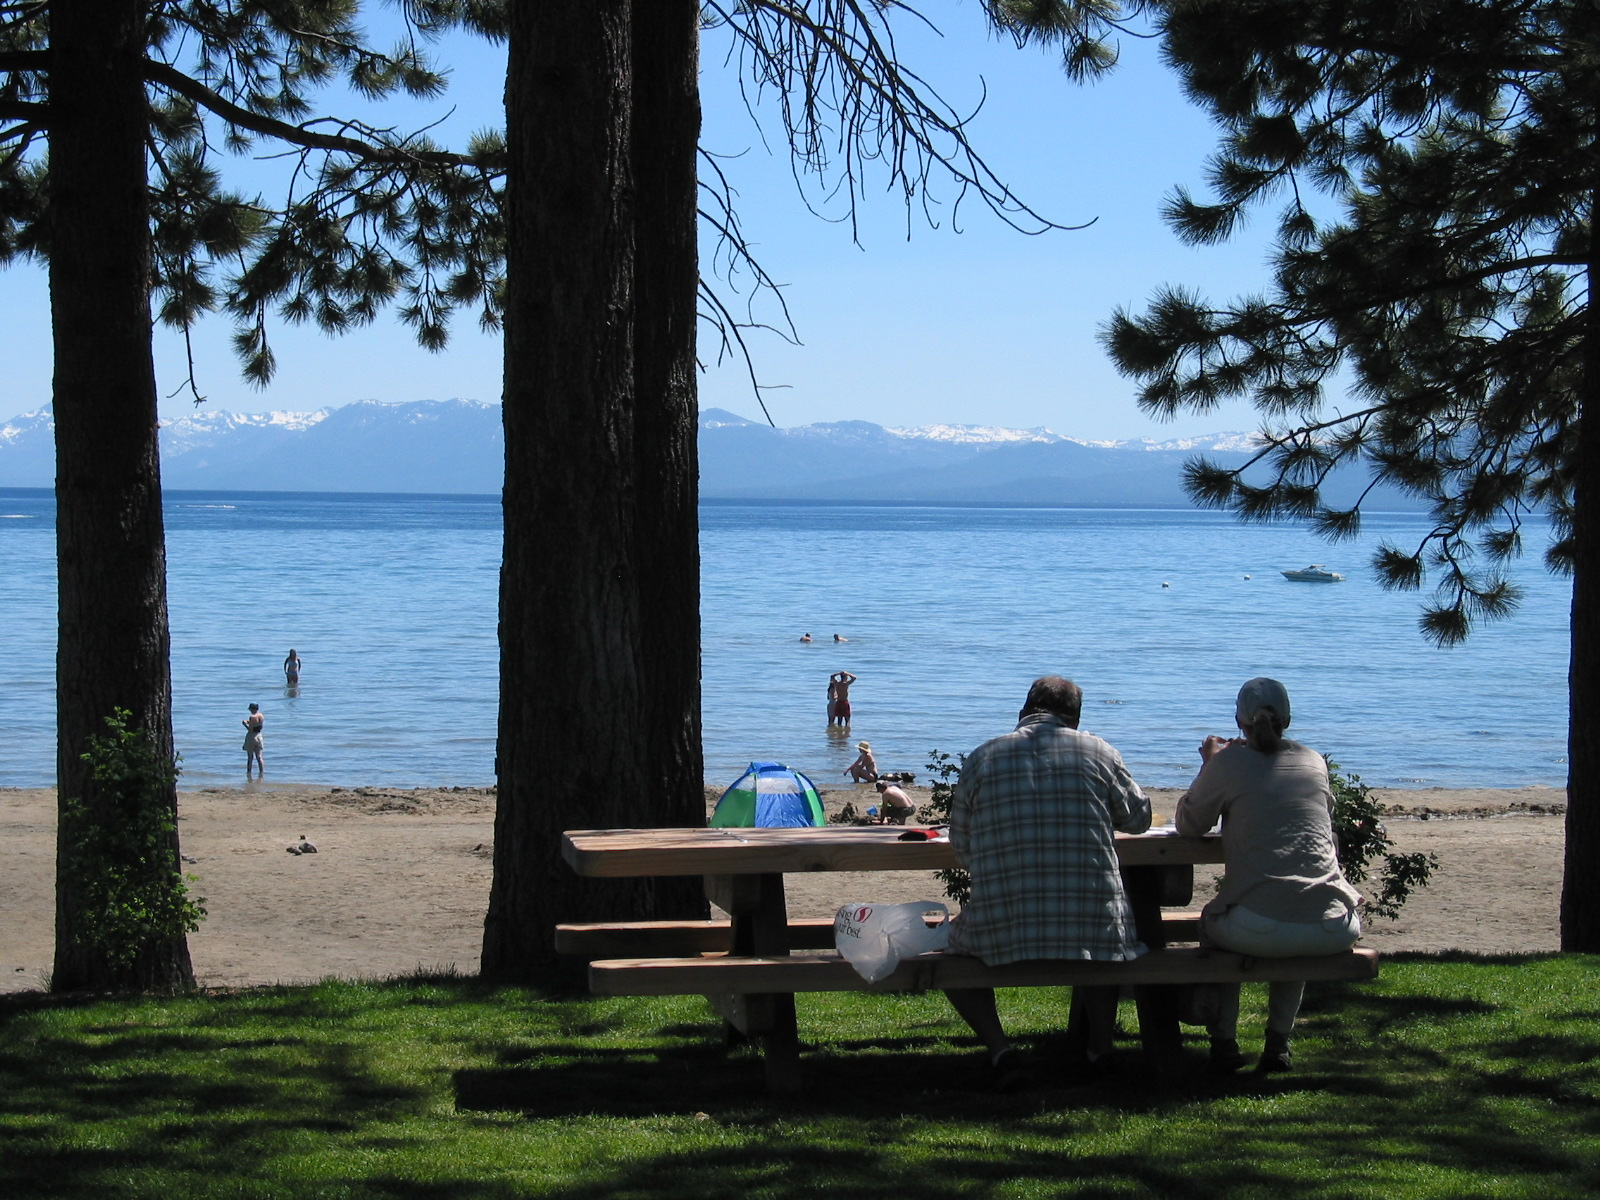 North Tahoe Beach Image 3